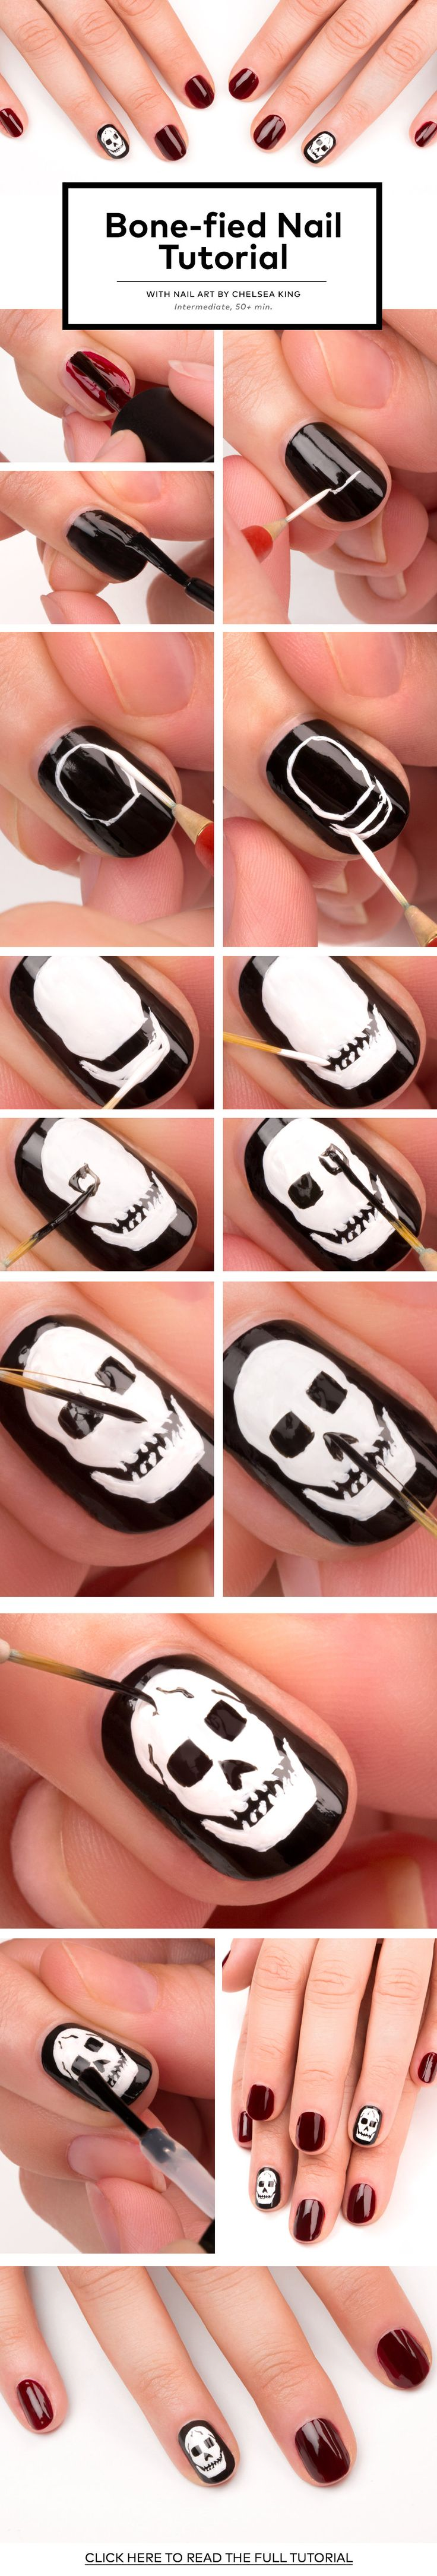 Bone-fied Nail Tutorial | Beautylish